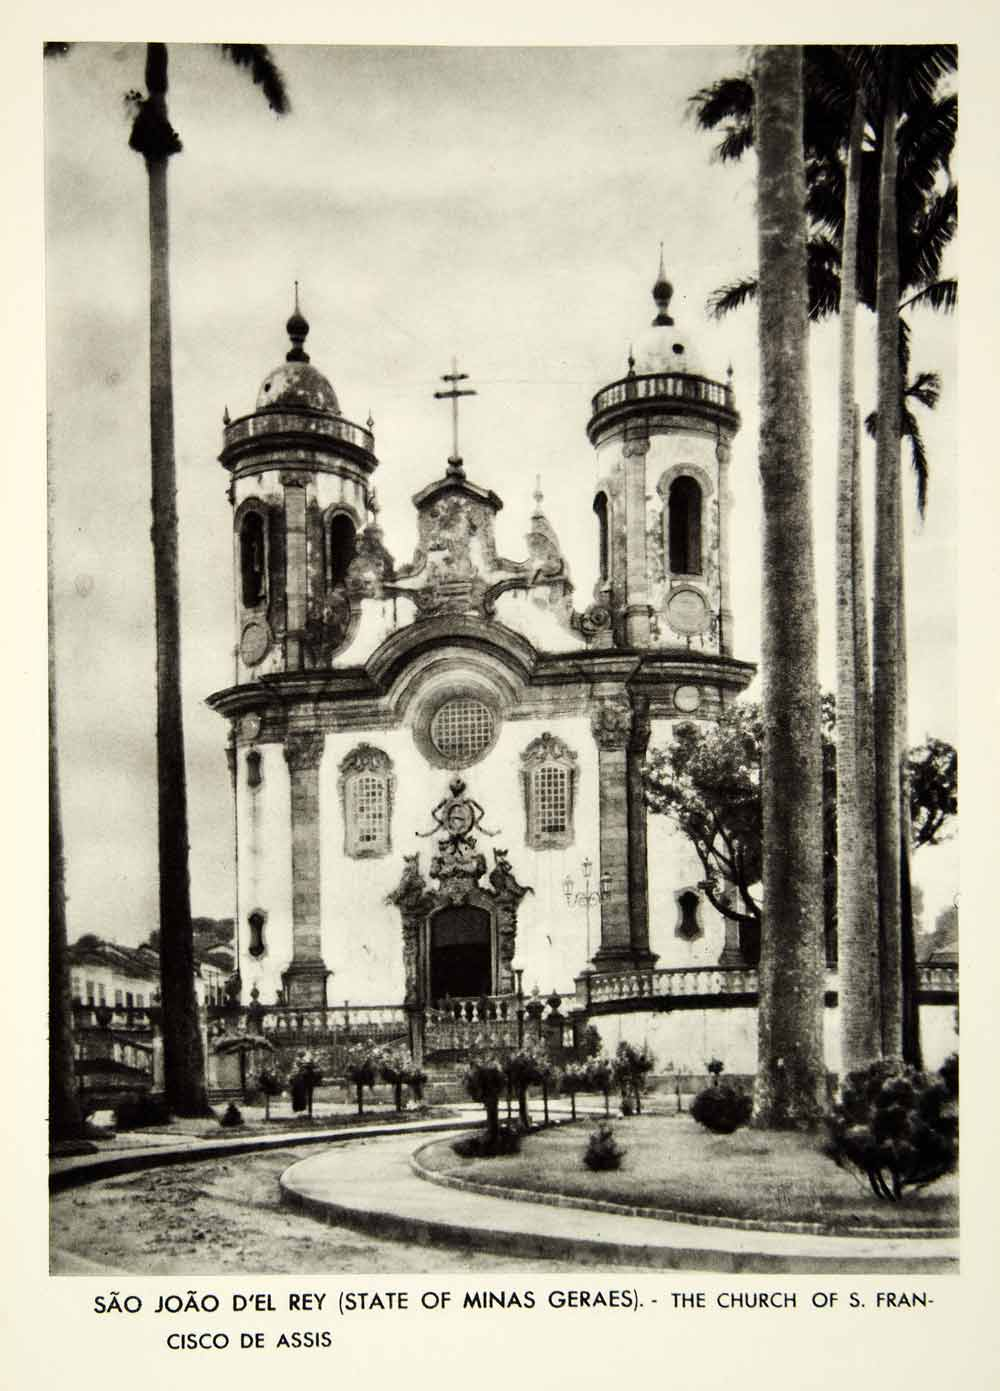 1939 Rotogravure Sao Joao del Rey Rei Church Saint Francisco de Assis XGRC6